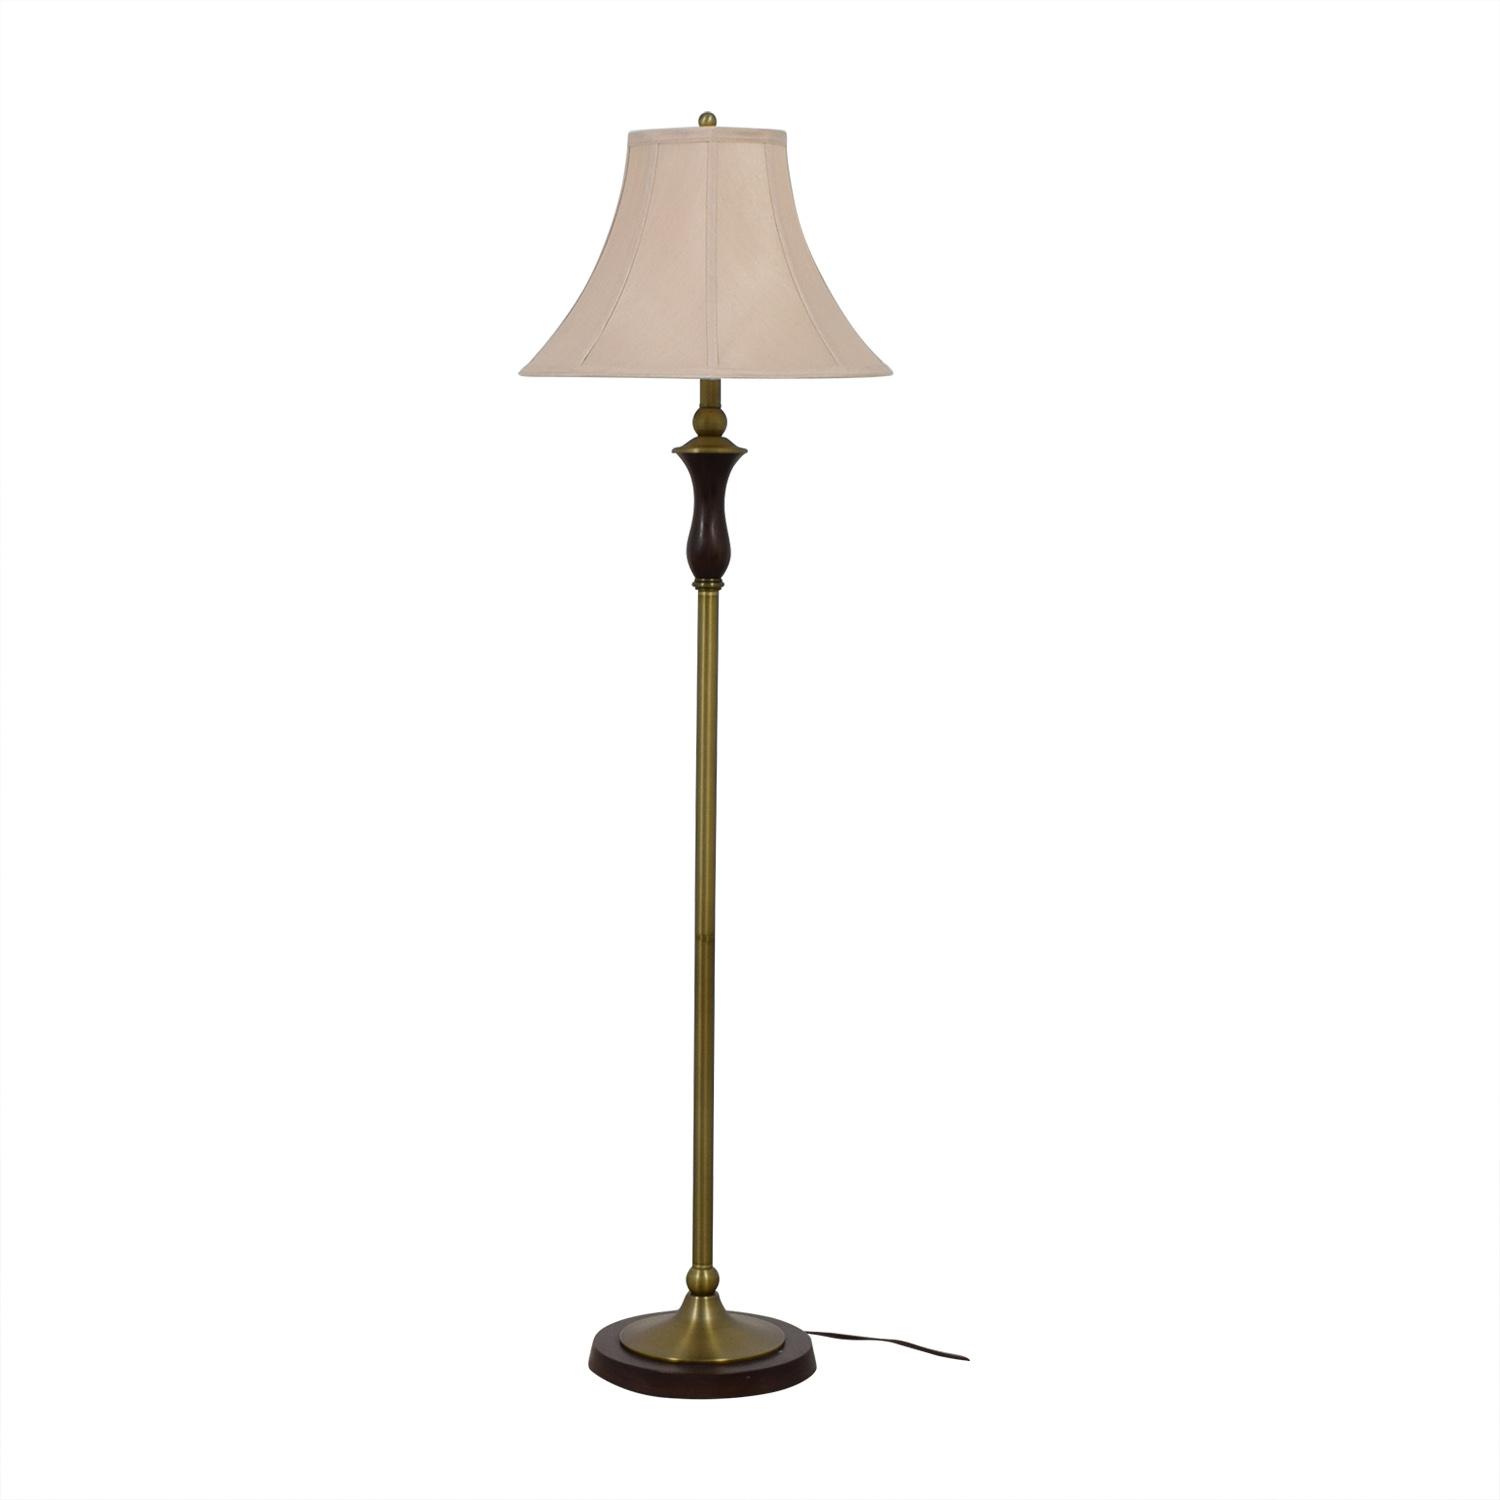 buy Crate & Barrel Wood and Brass Floor Lamp Crate & Barrel Lamps